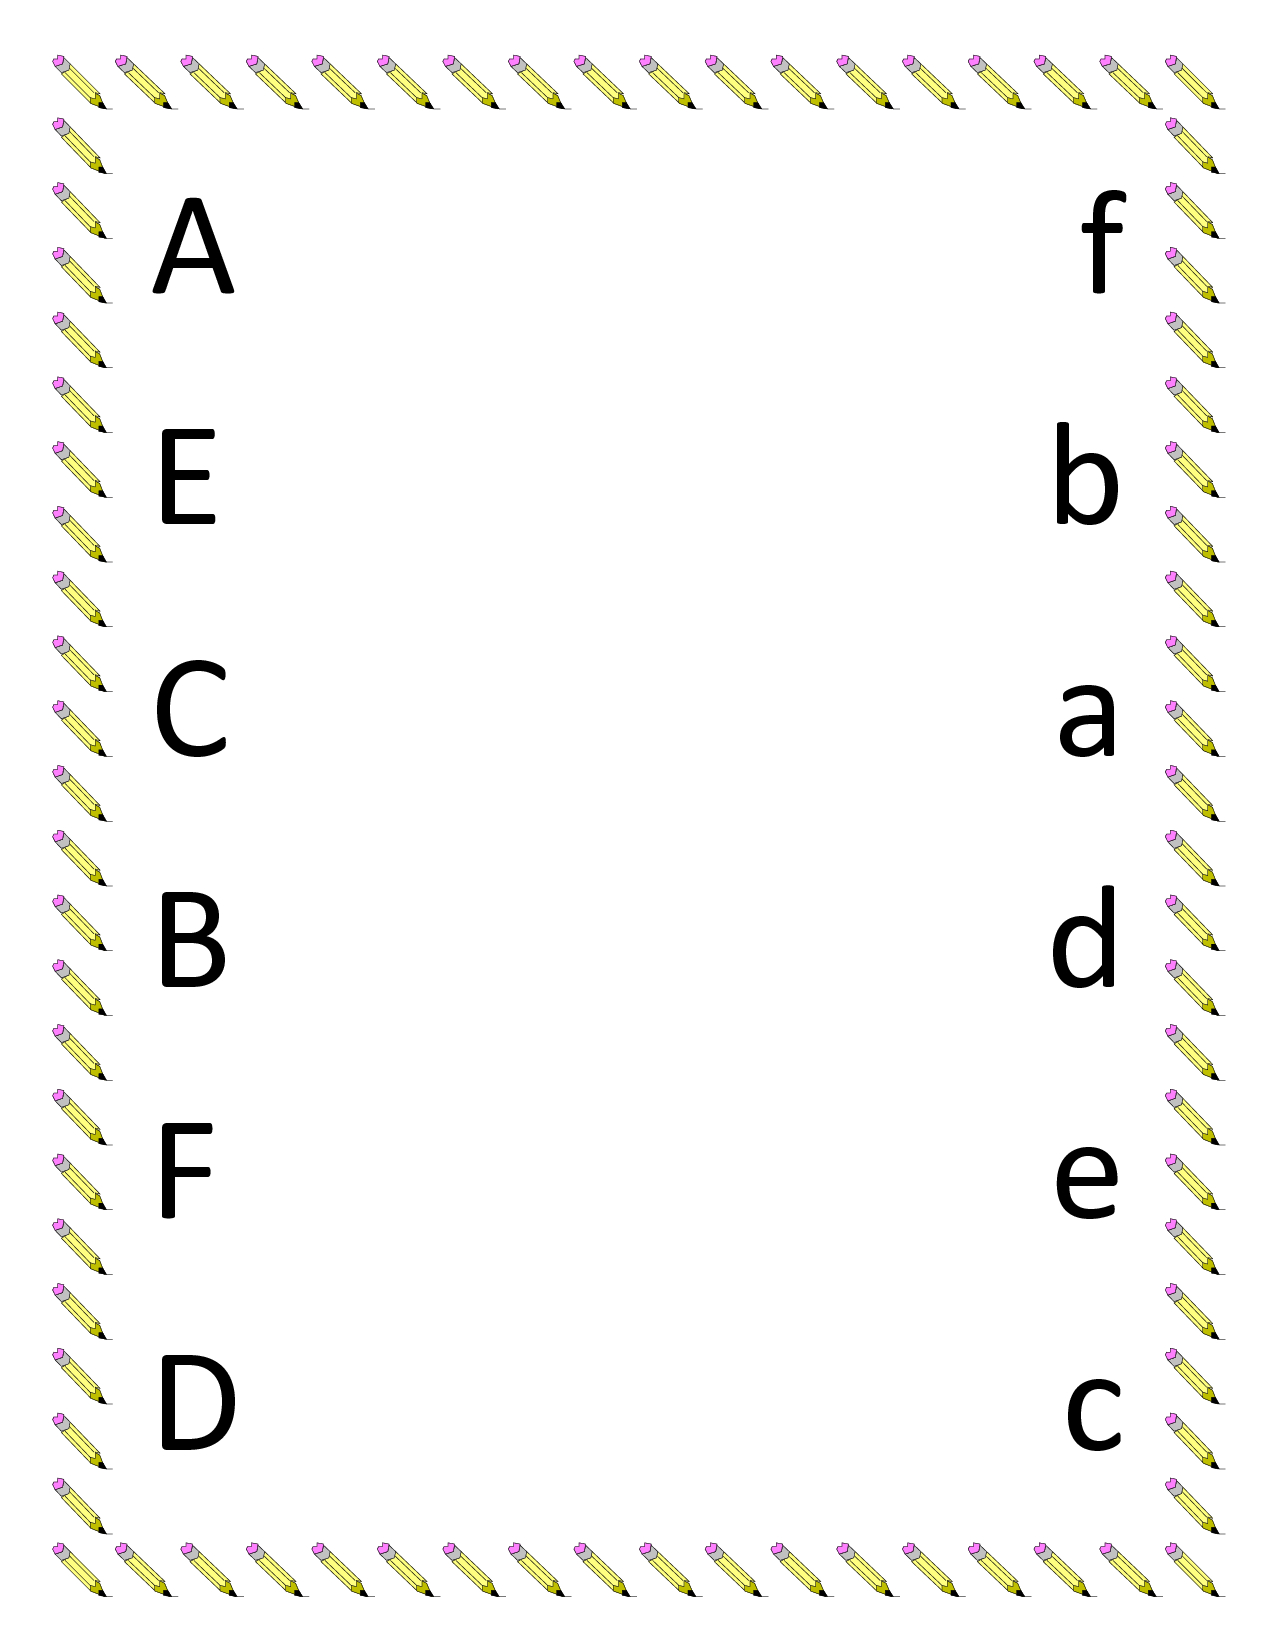 Abc Matching Worksheets Printable